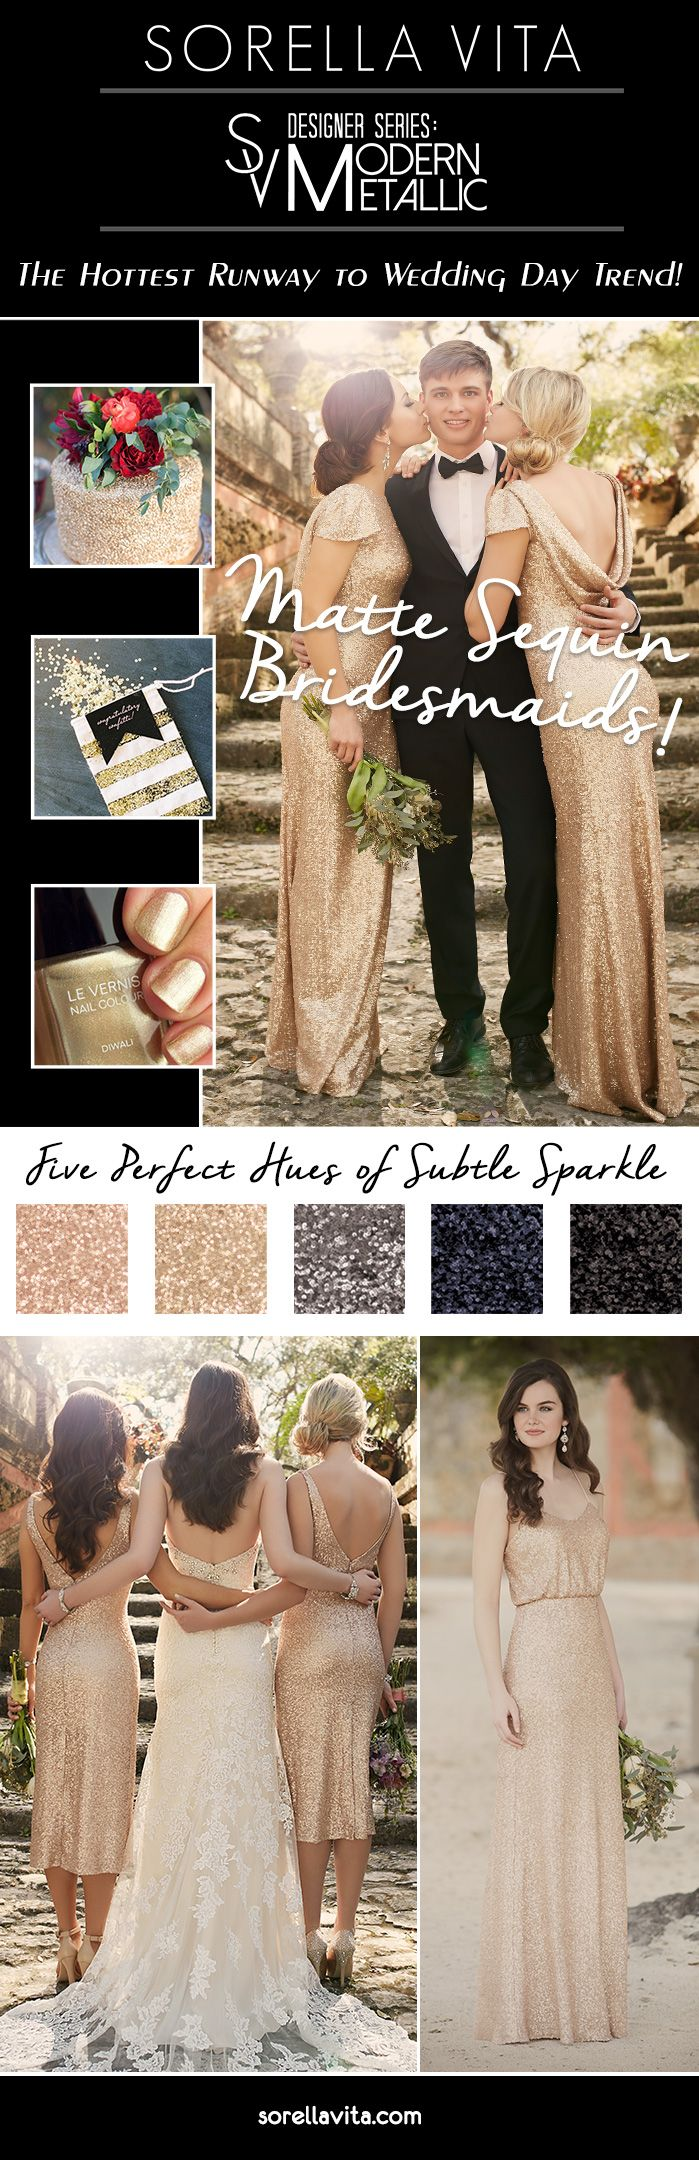 Matte sequin bridesmaid dresses. Sorella Vita Designer Series: Modern Metallic